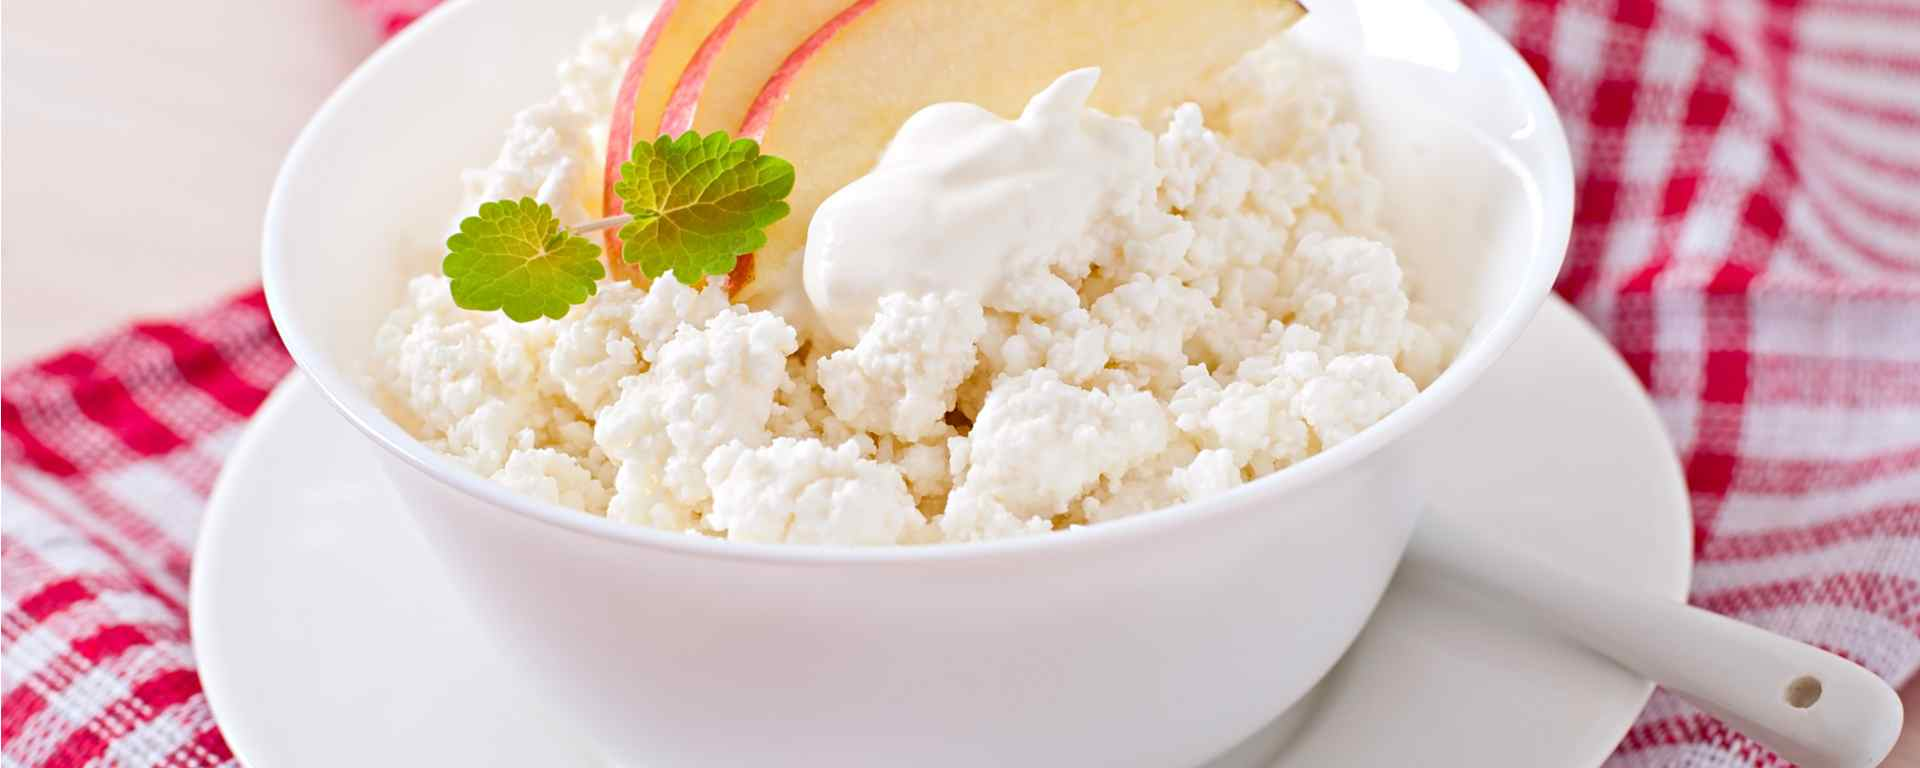 Photo for - Orchard Fruit Cottage Cheese Bowl